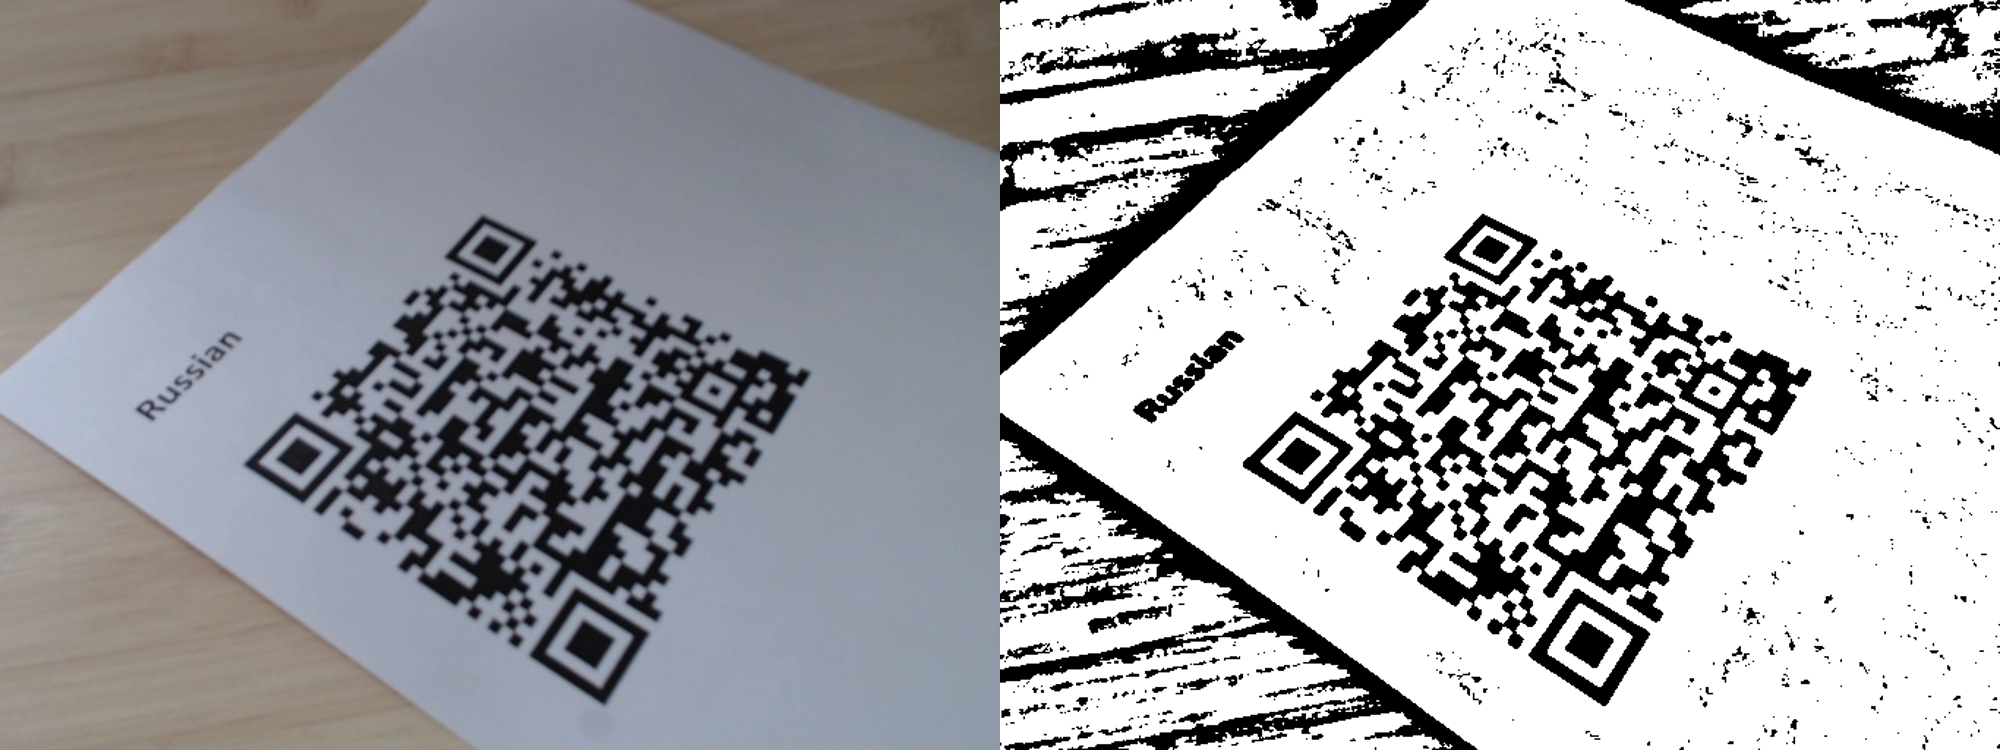 qrcode0.png